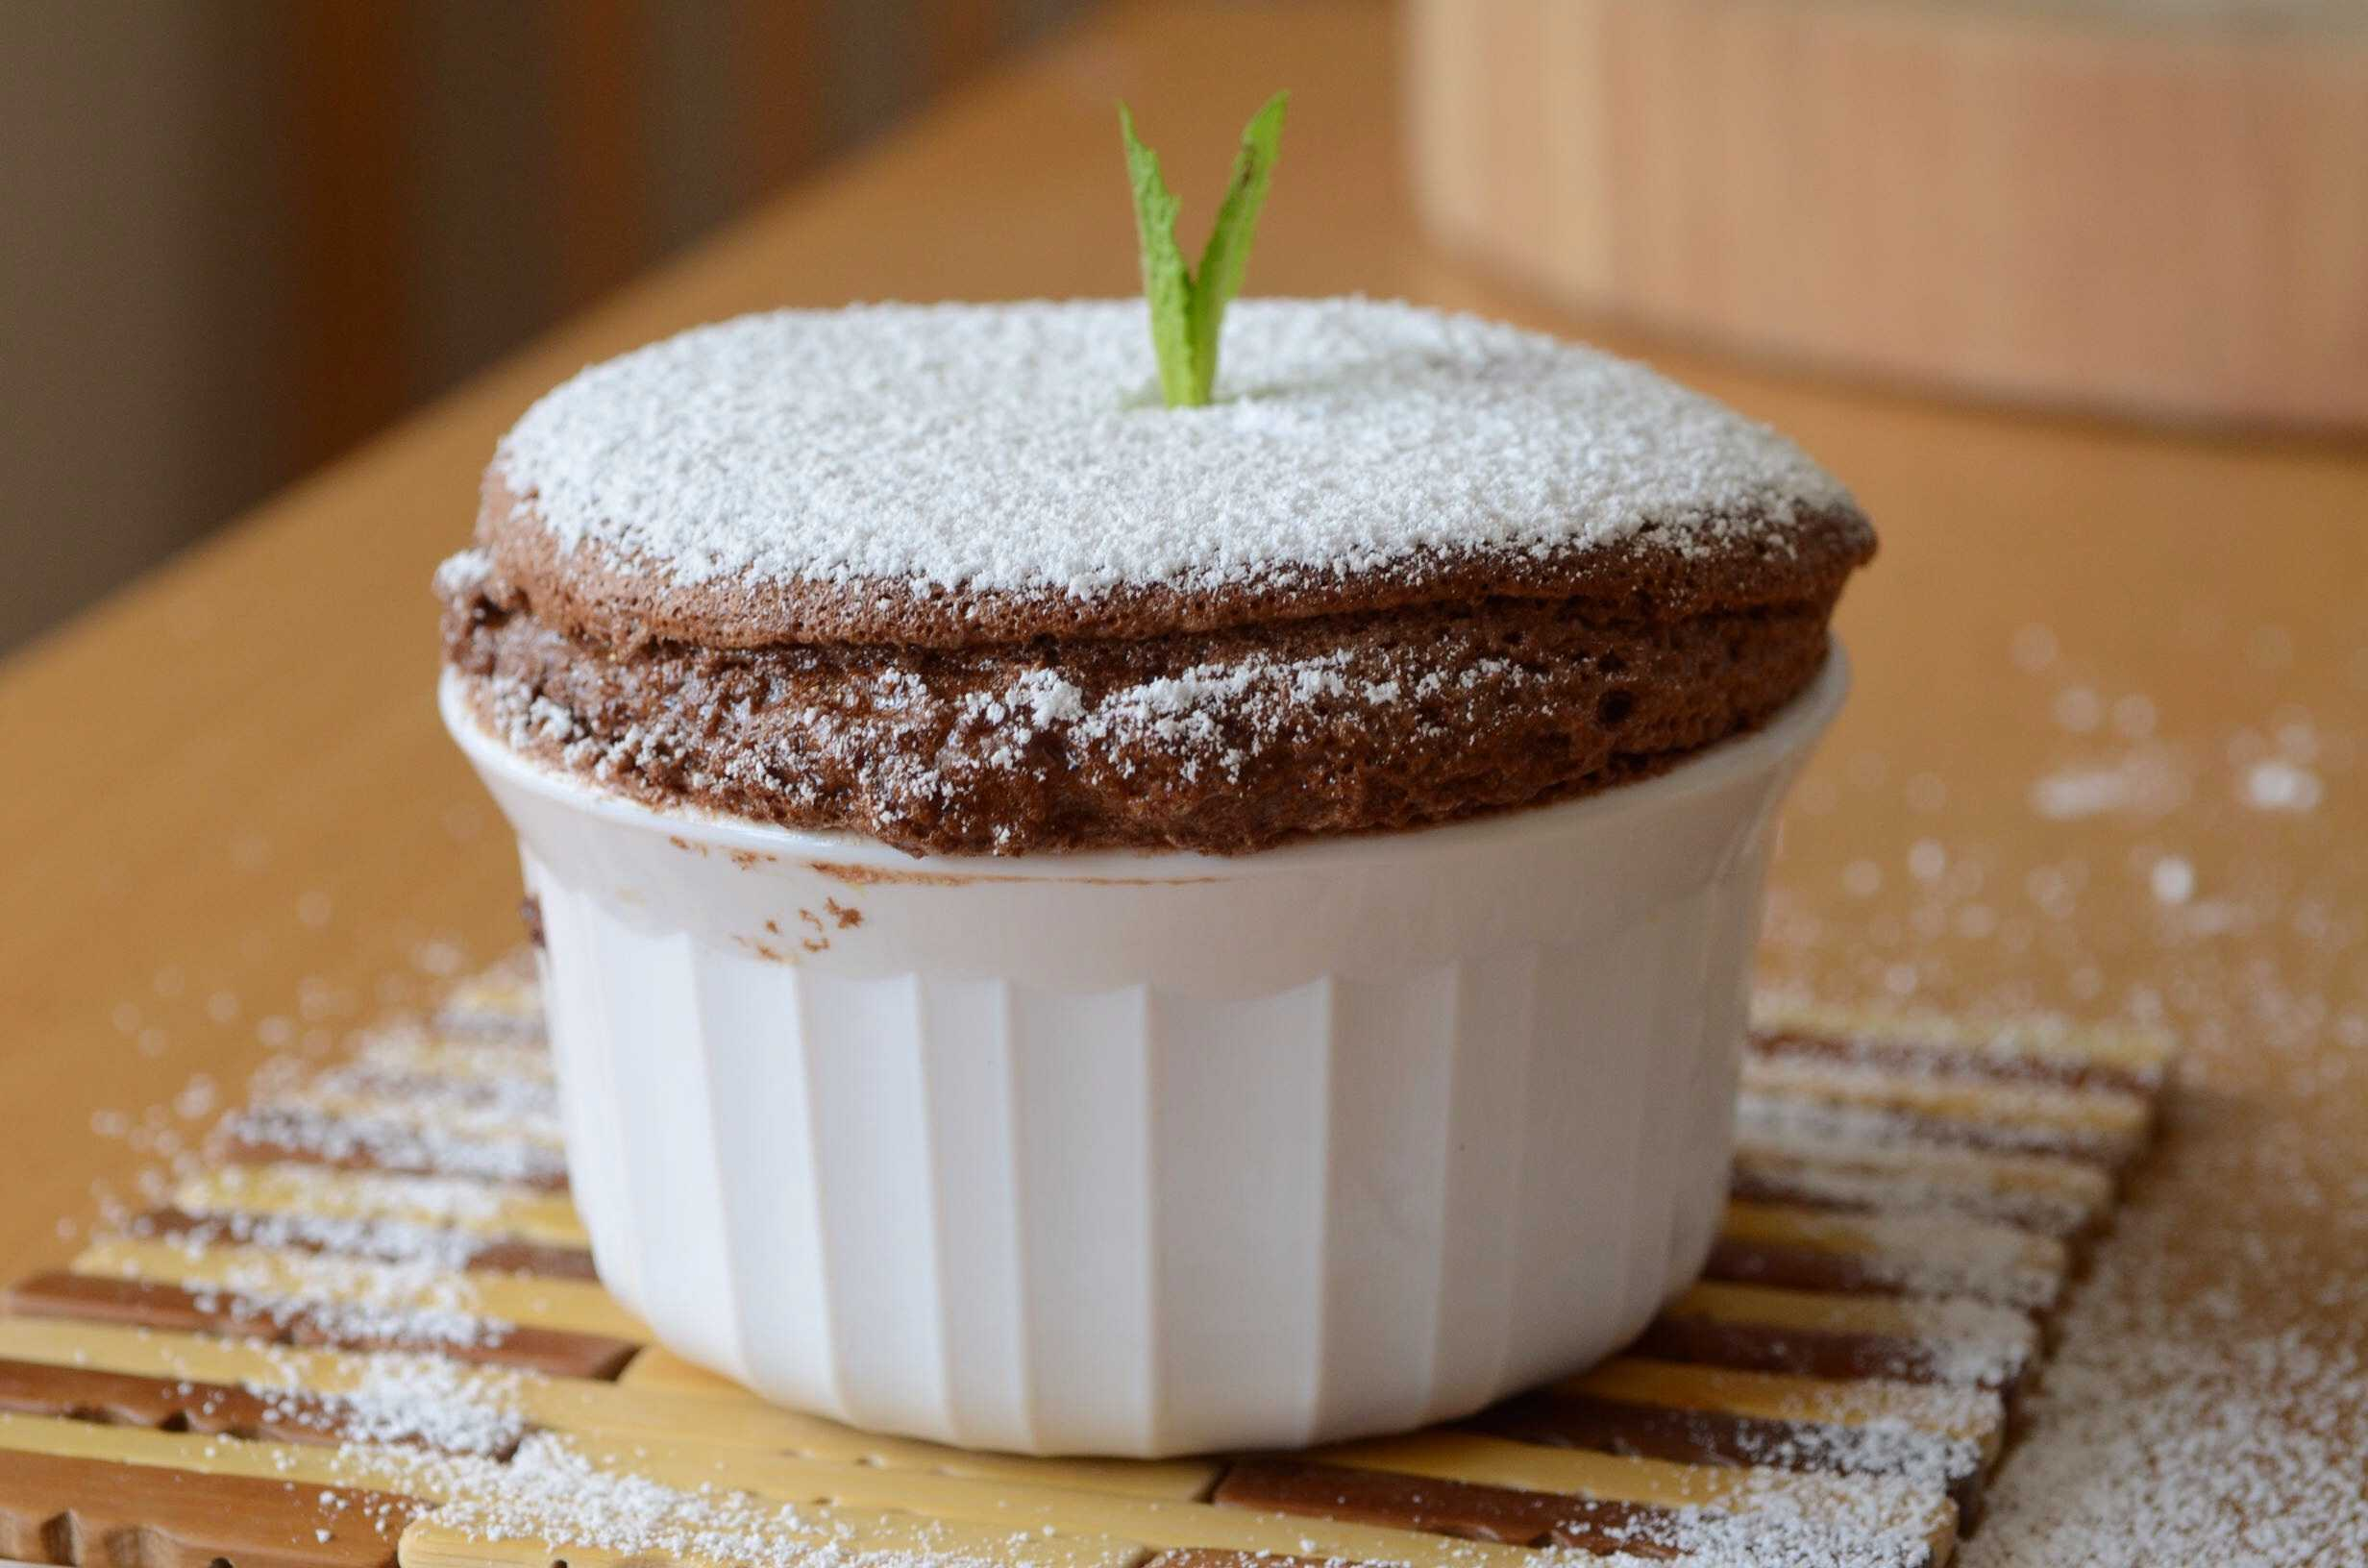 The mint chocolate souffle is a light, refreshing dessert that tastes great anytime. To make it even better, eat fresh out of the oven with ice cream.